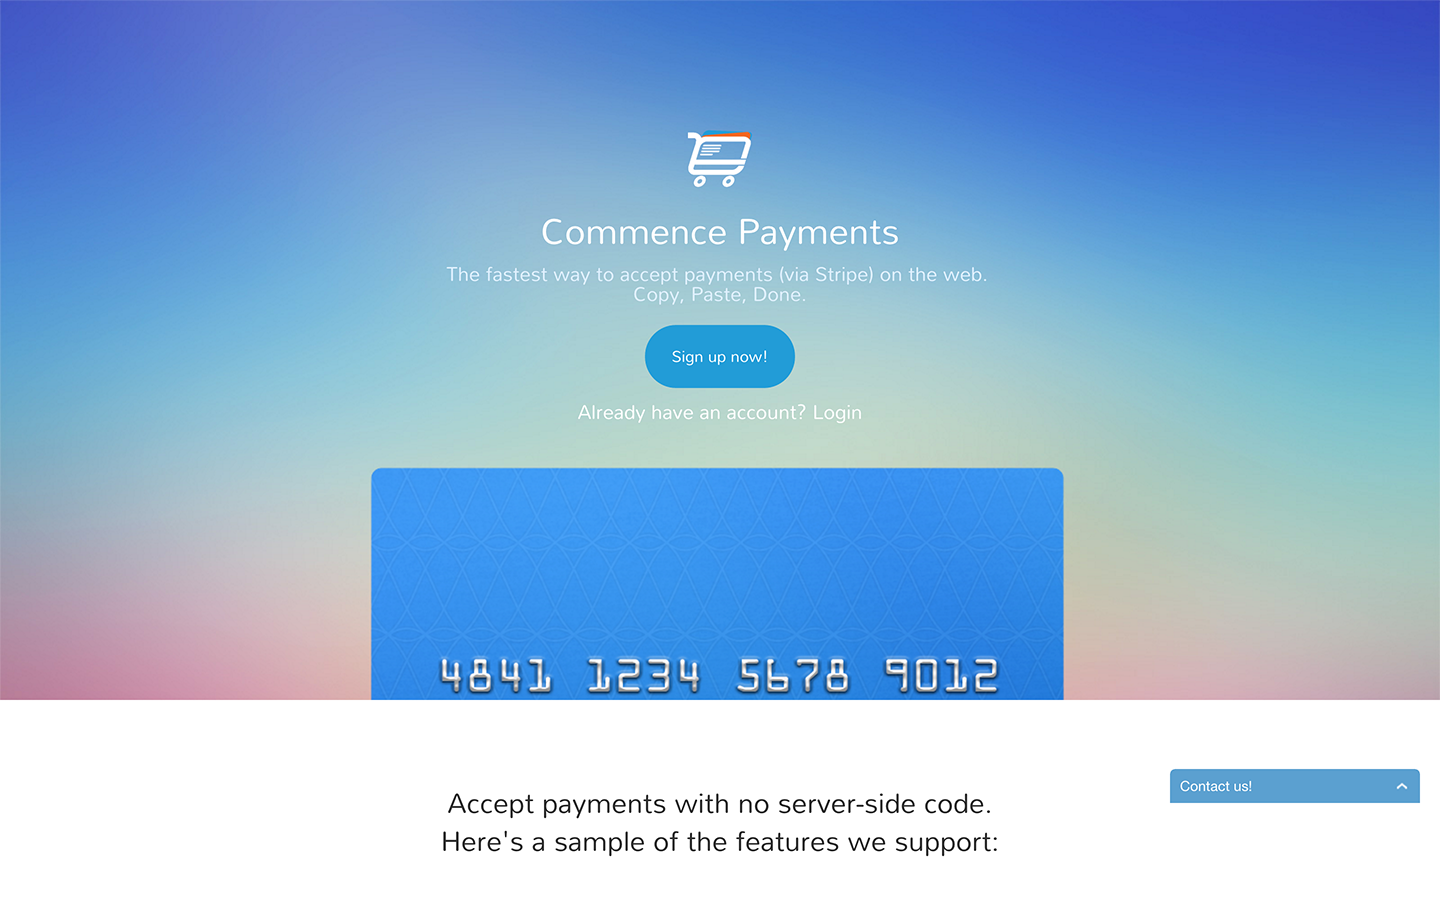 Commence Payments screenshot 0